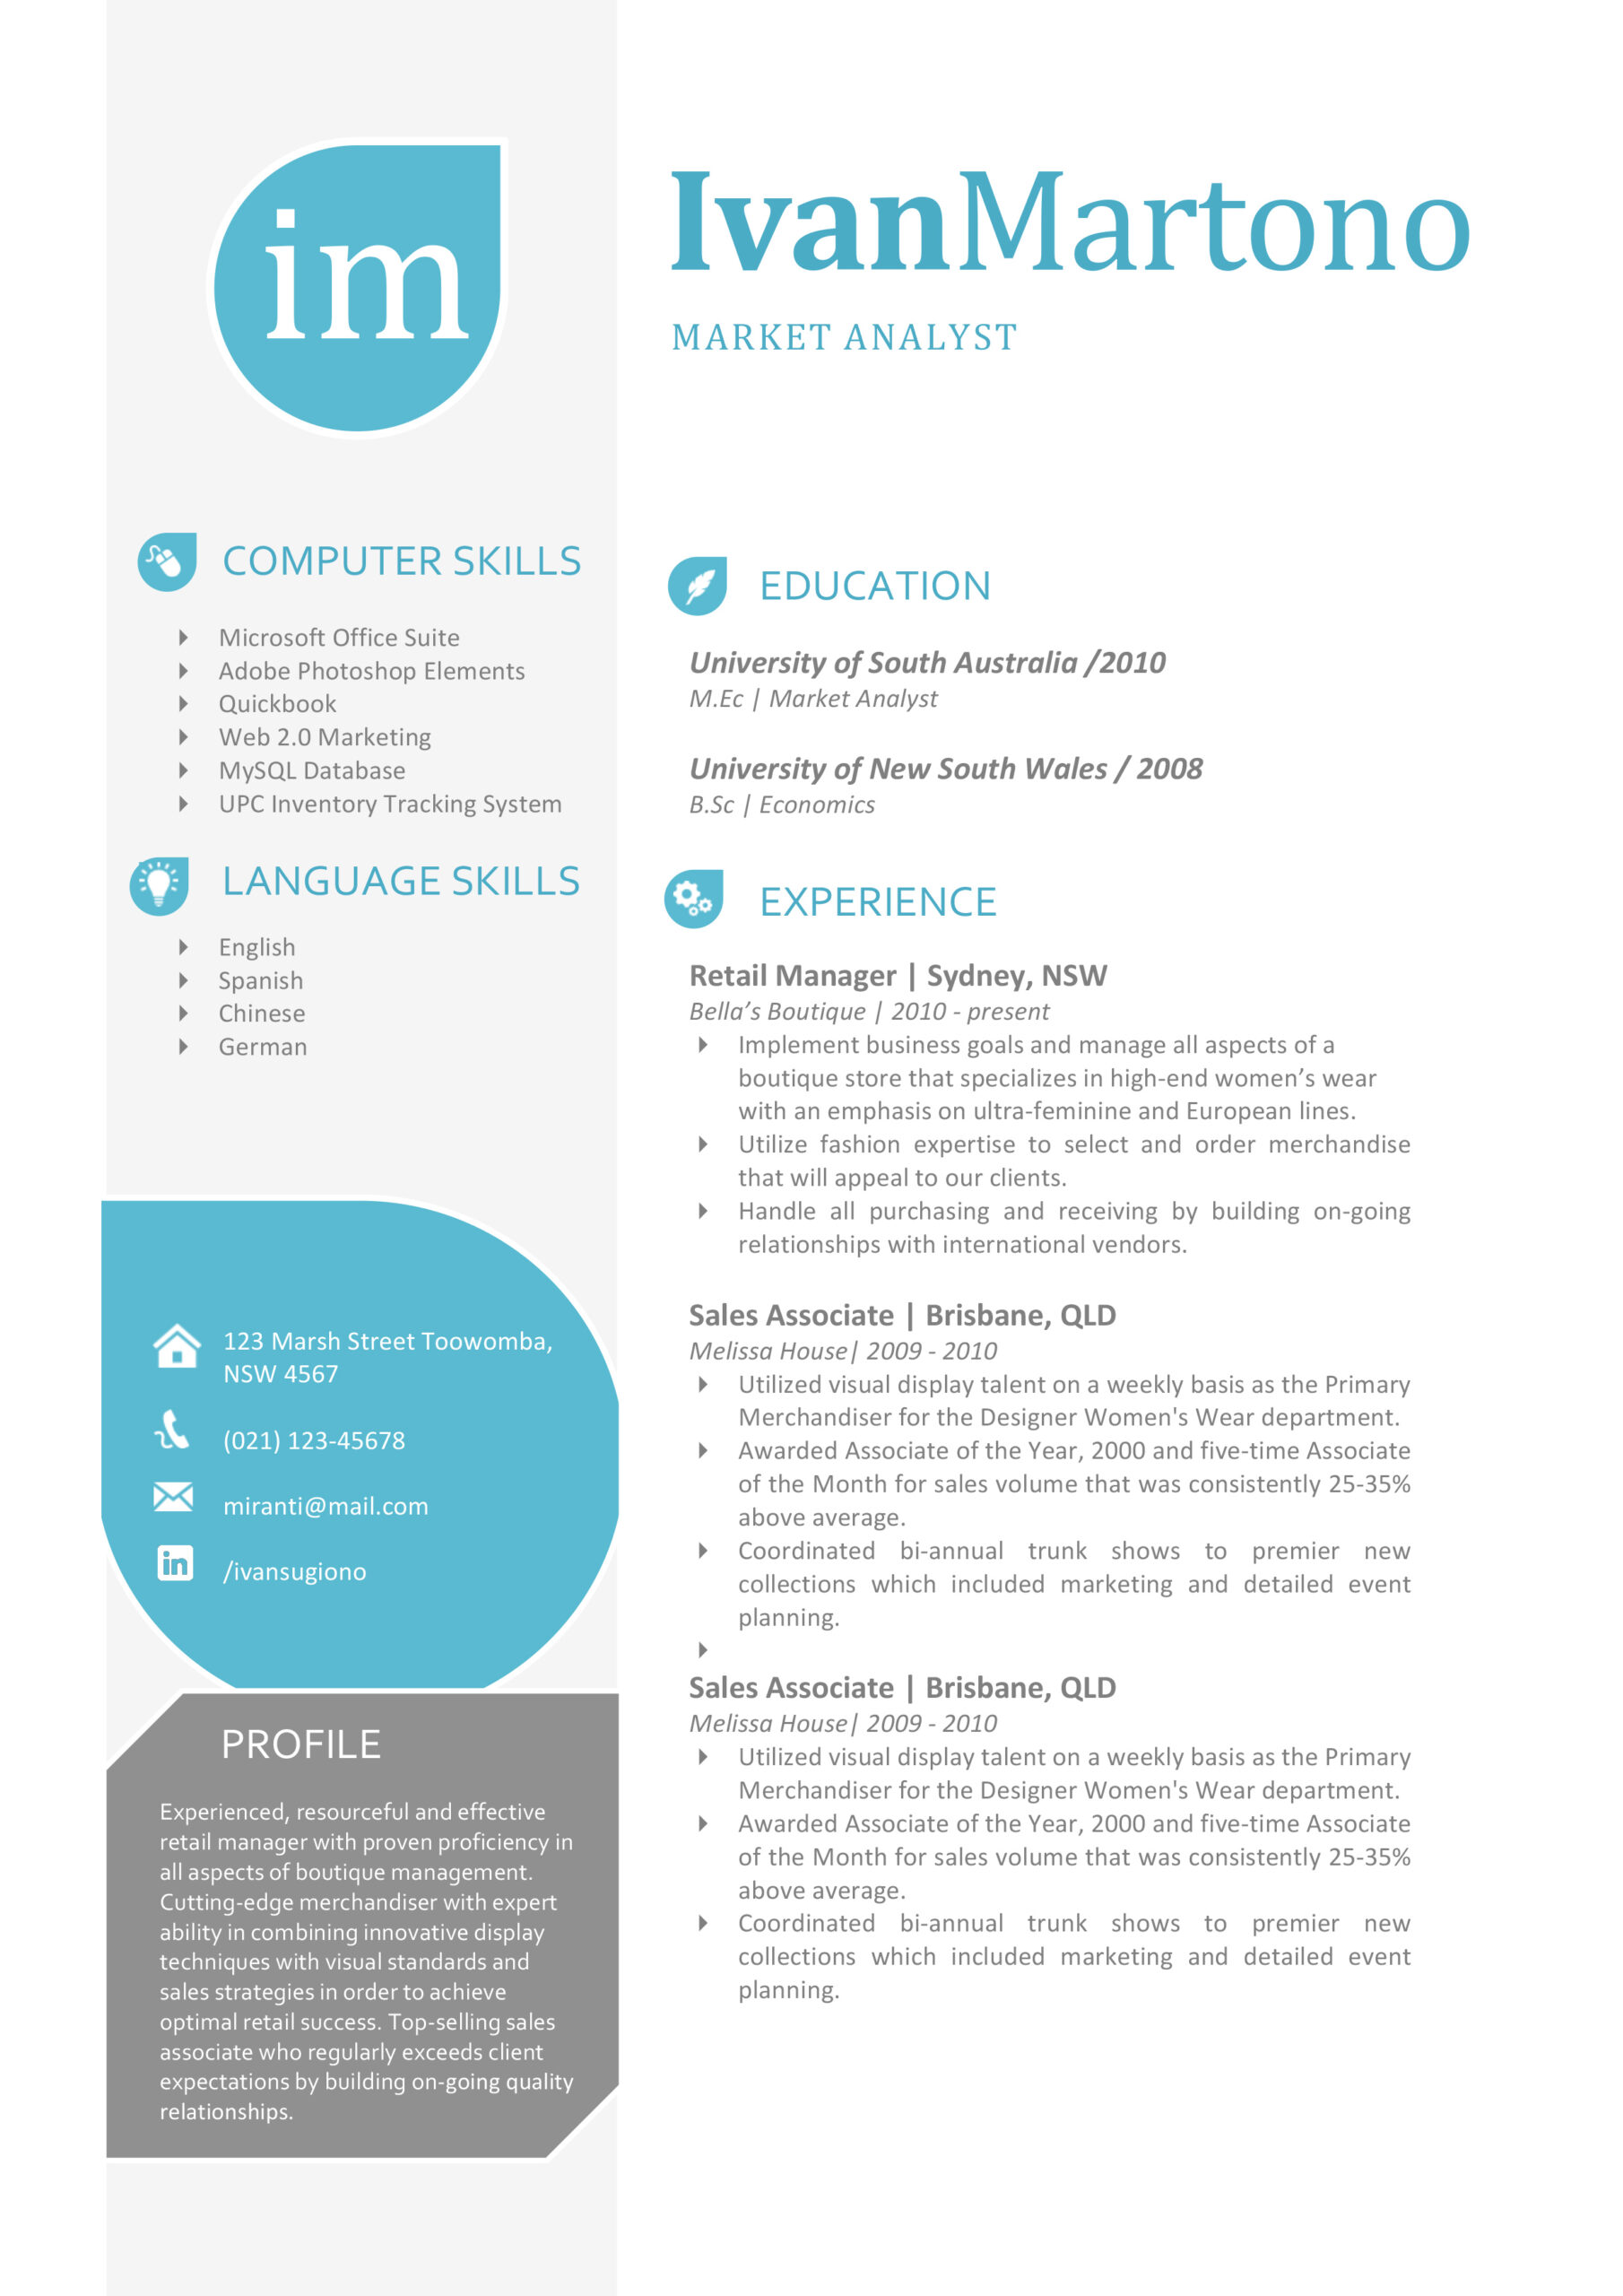 the ivan resume creative template cutting edge templates martono cover letter samples for Resume Cutting Edge Resume Templates